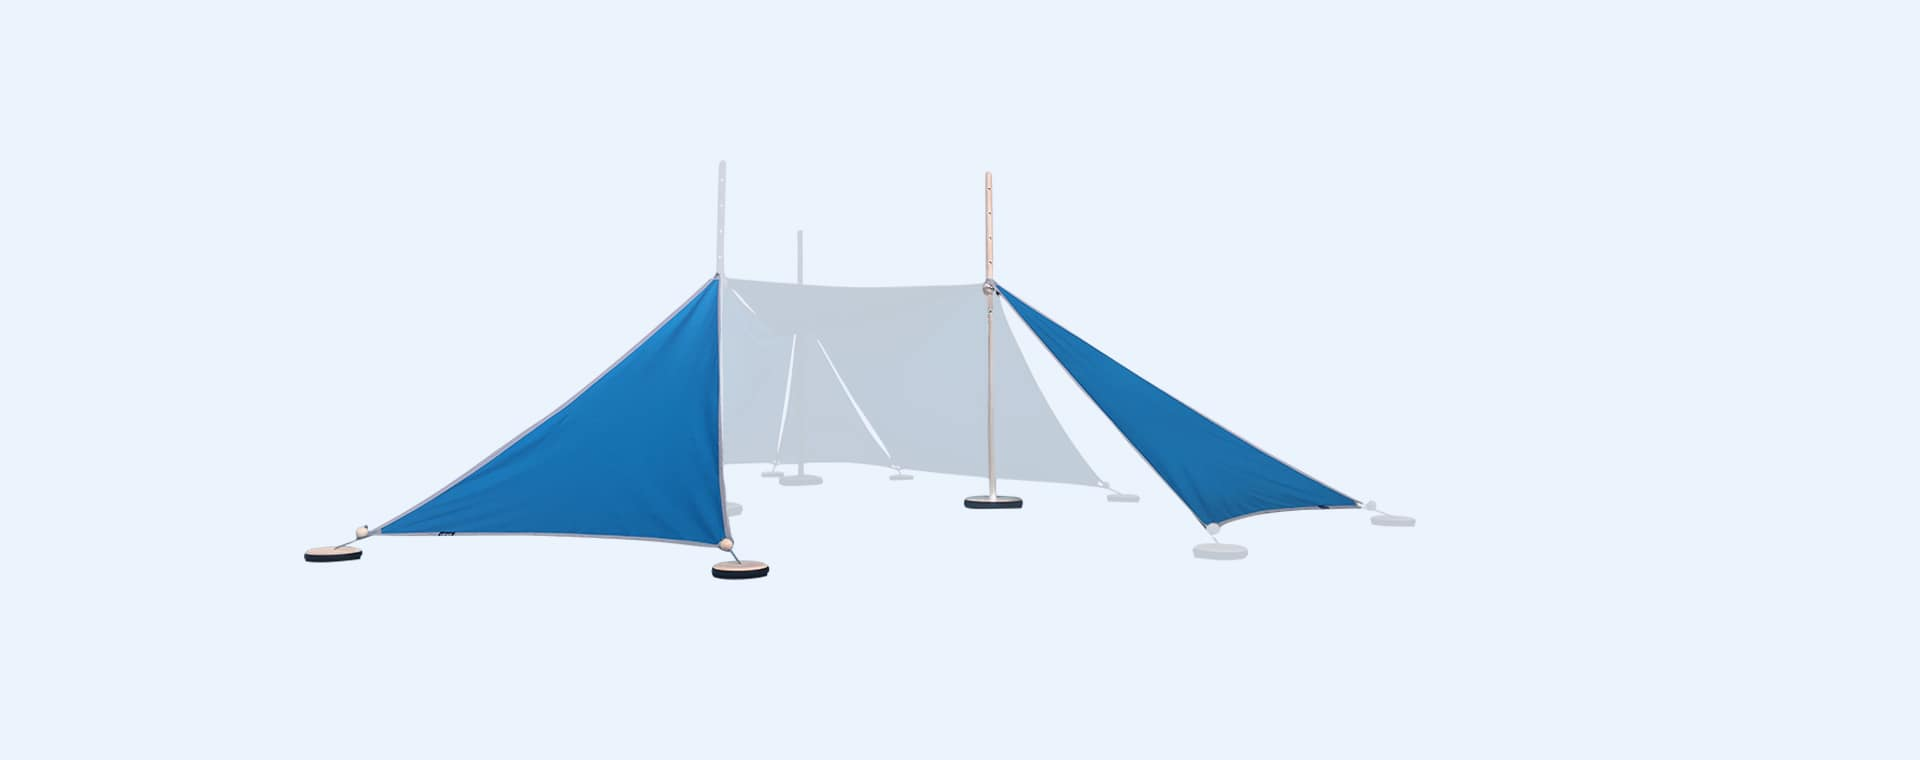 Turquoise abel Tent Extension Kit 2-3 with Pegs & Weights